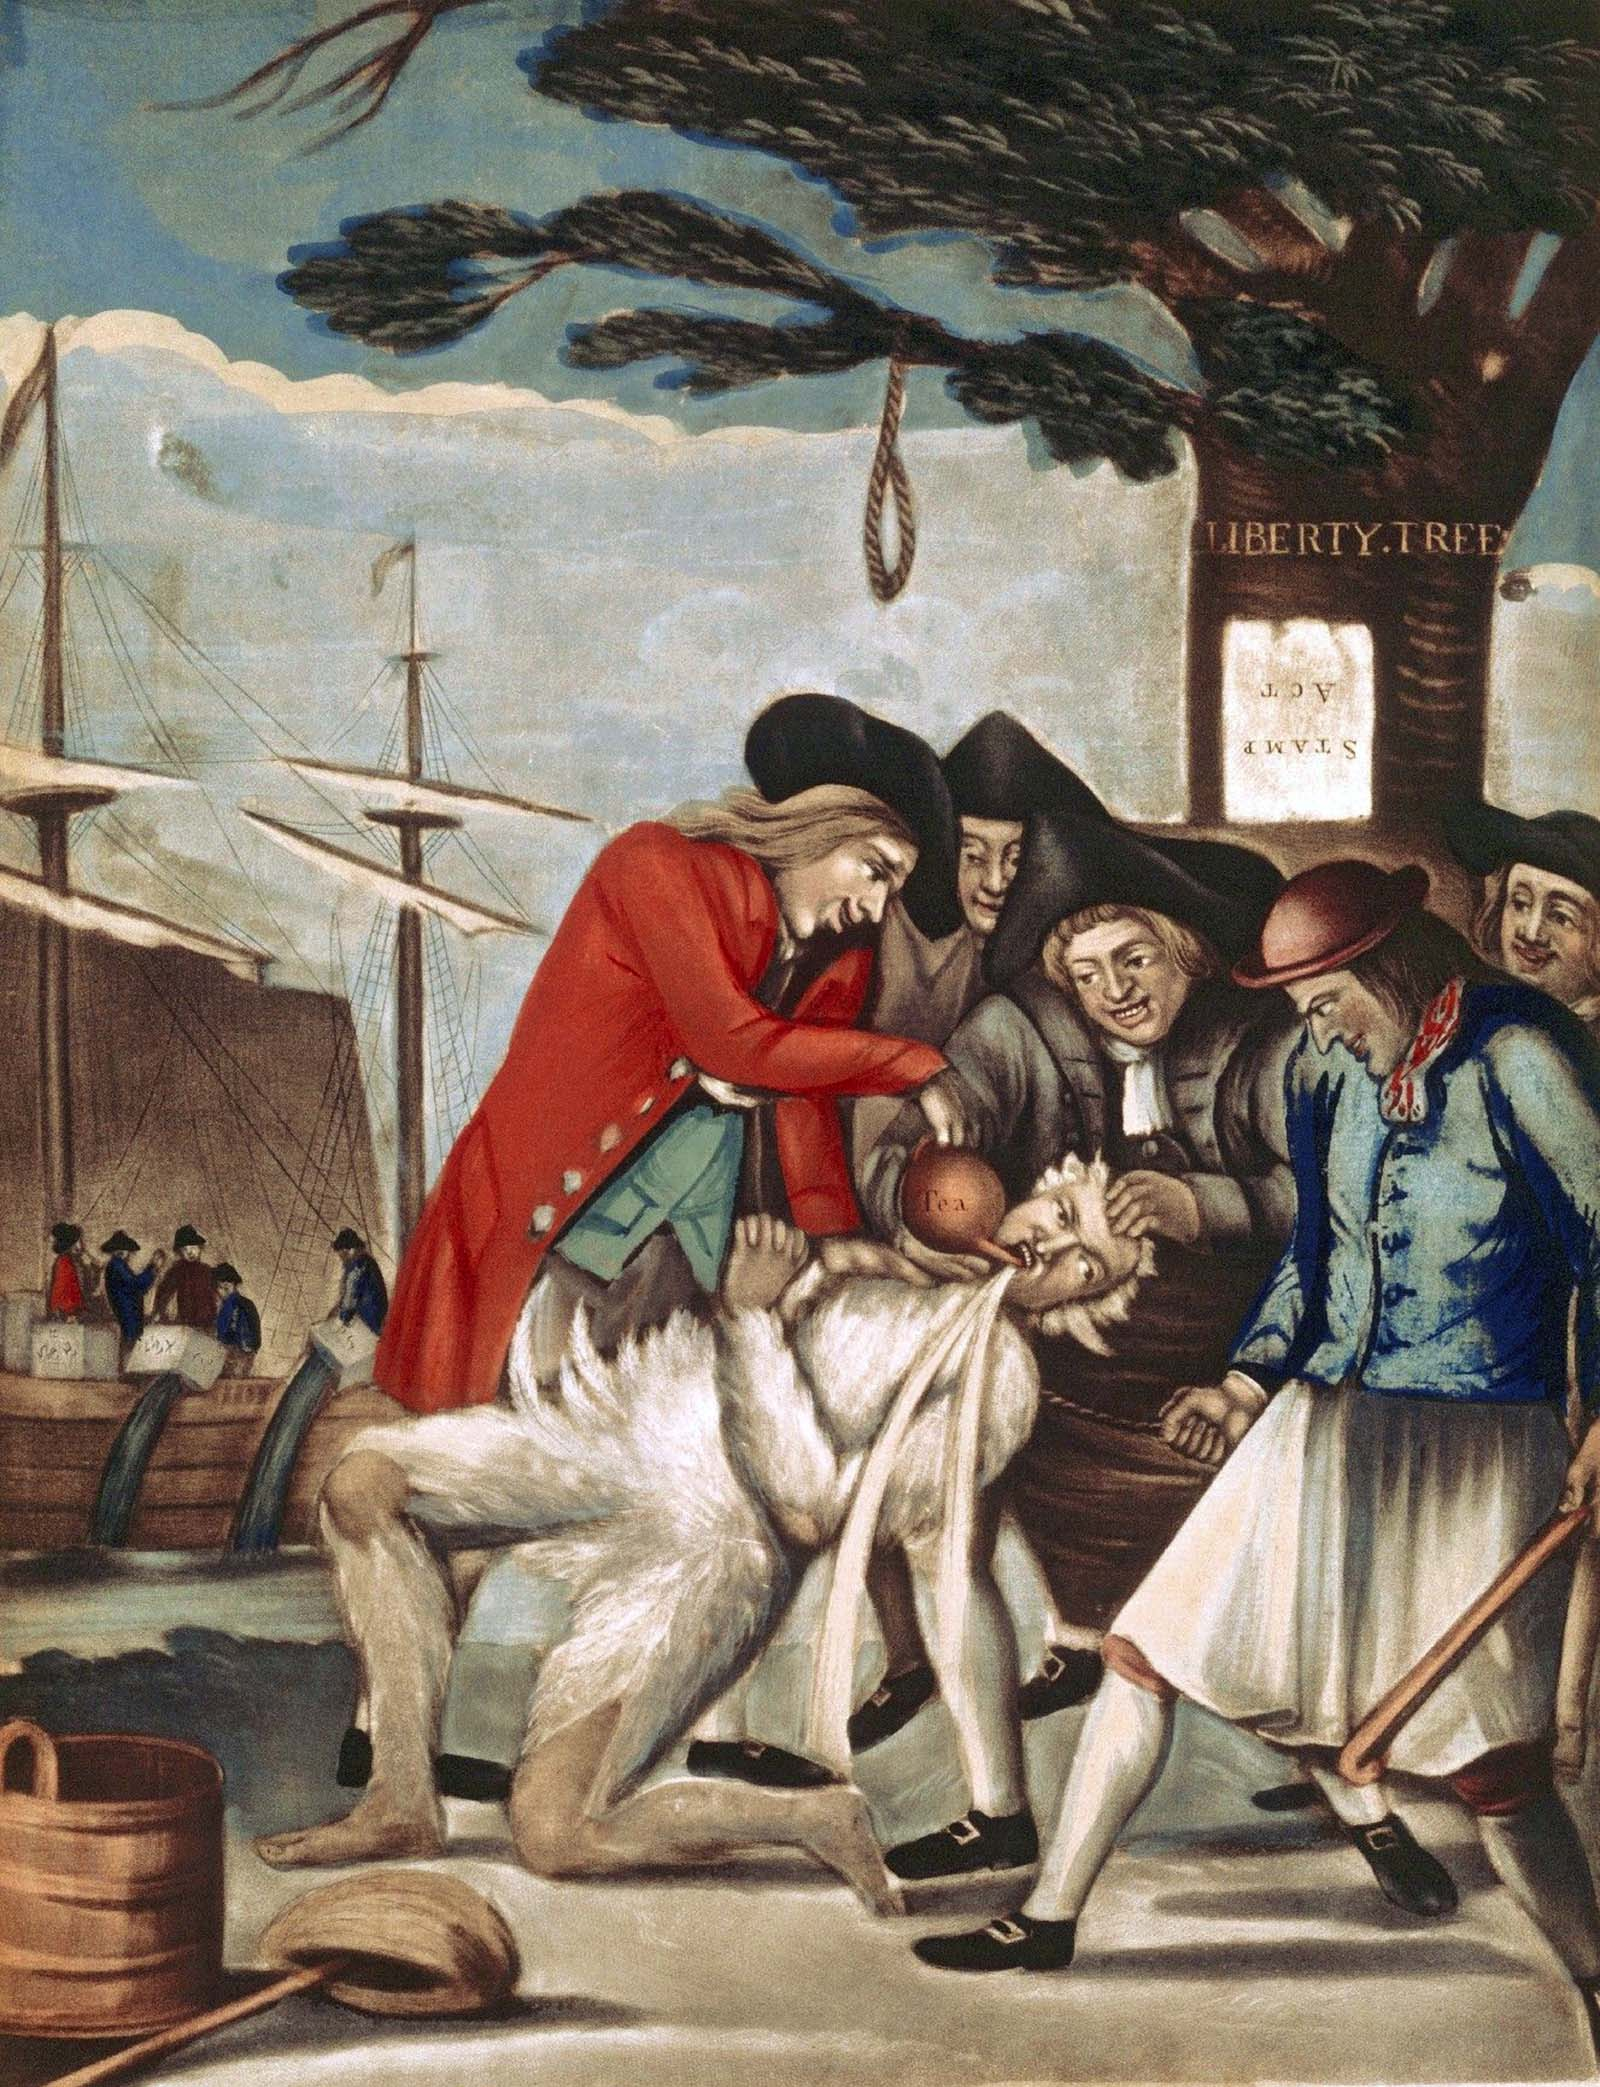 https://firebasestorage.googleapis.com/v0/b/fiveable-92889.appspot.com/o/images%2FPhilip_Dawe_attributed_The_Bostonians_Paying_the_Excise-man_or_Tarring_and_Feathering_1774.jpg?alt=media&token=c6595534-dc5c-4e0e-a51d-88c2f8d98713